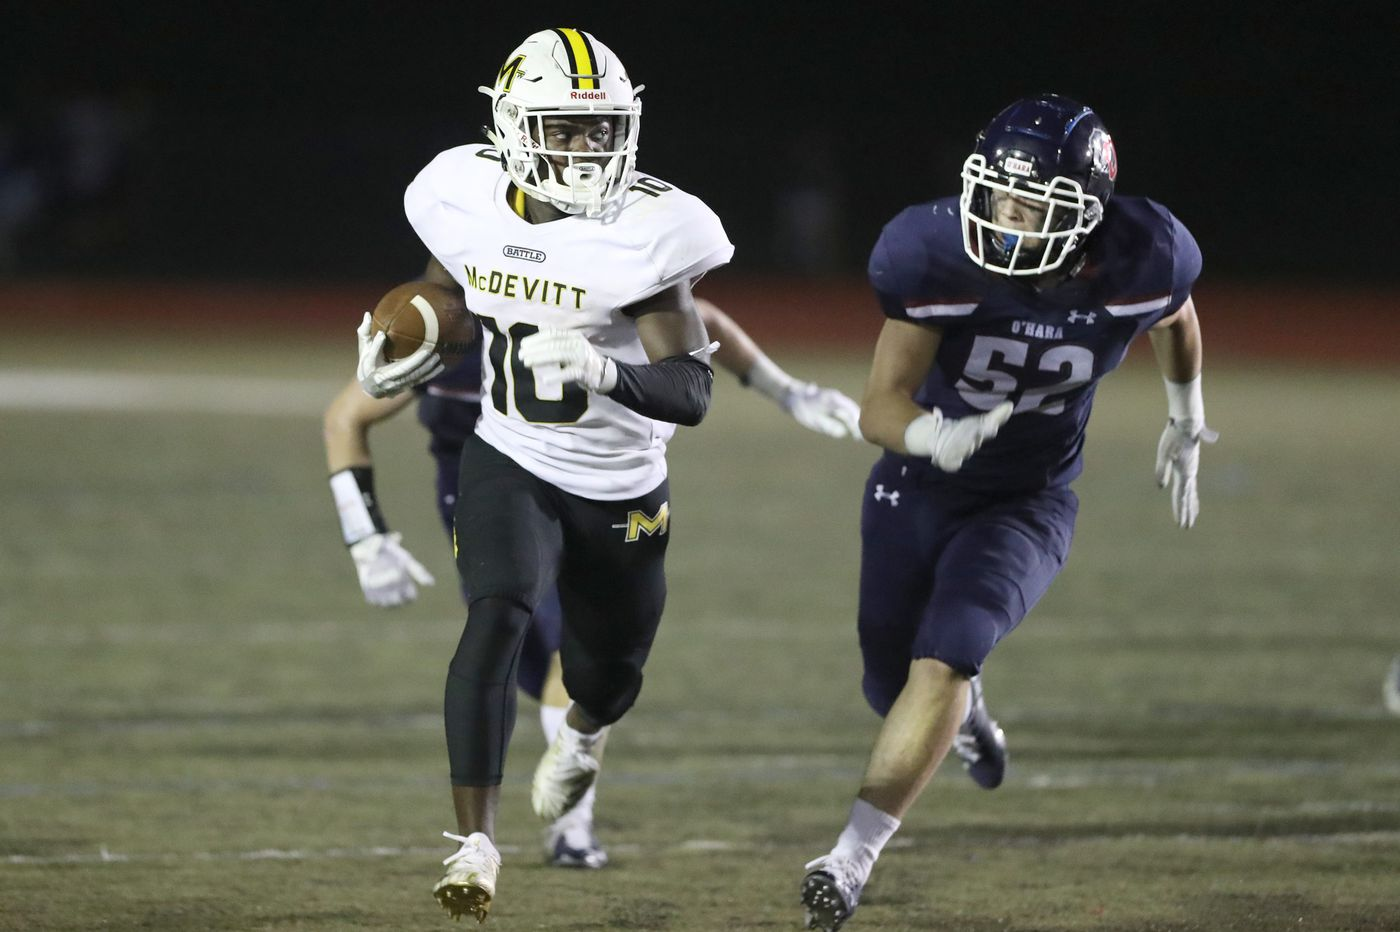 Bishop McDevitt's Jon-Luke Peaker is top rusher | Southeastern Pa. Football Leaders